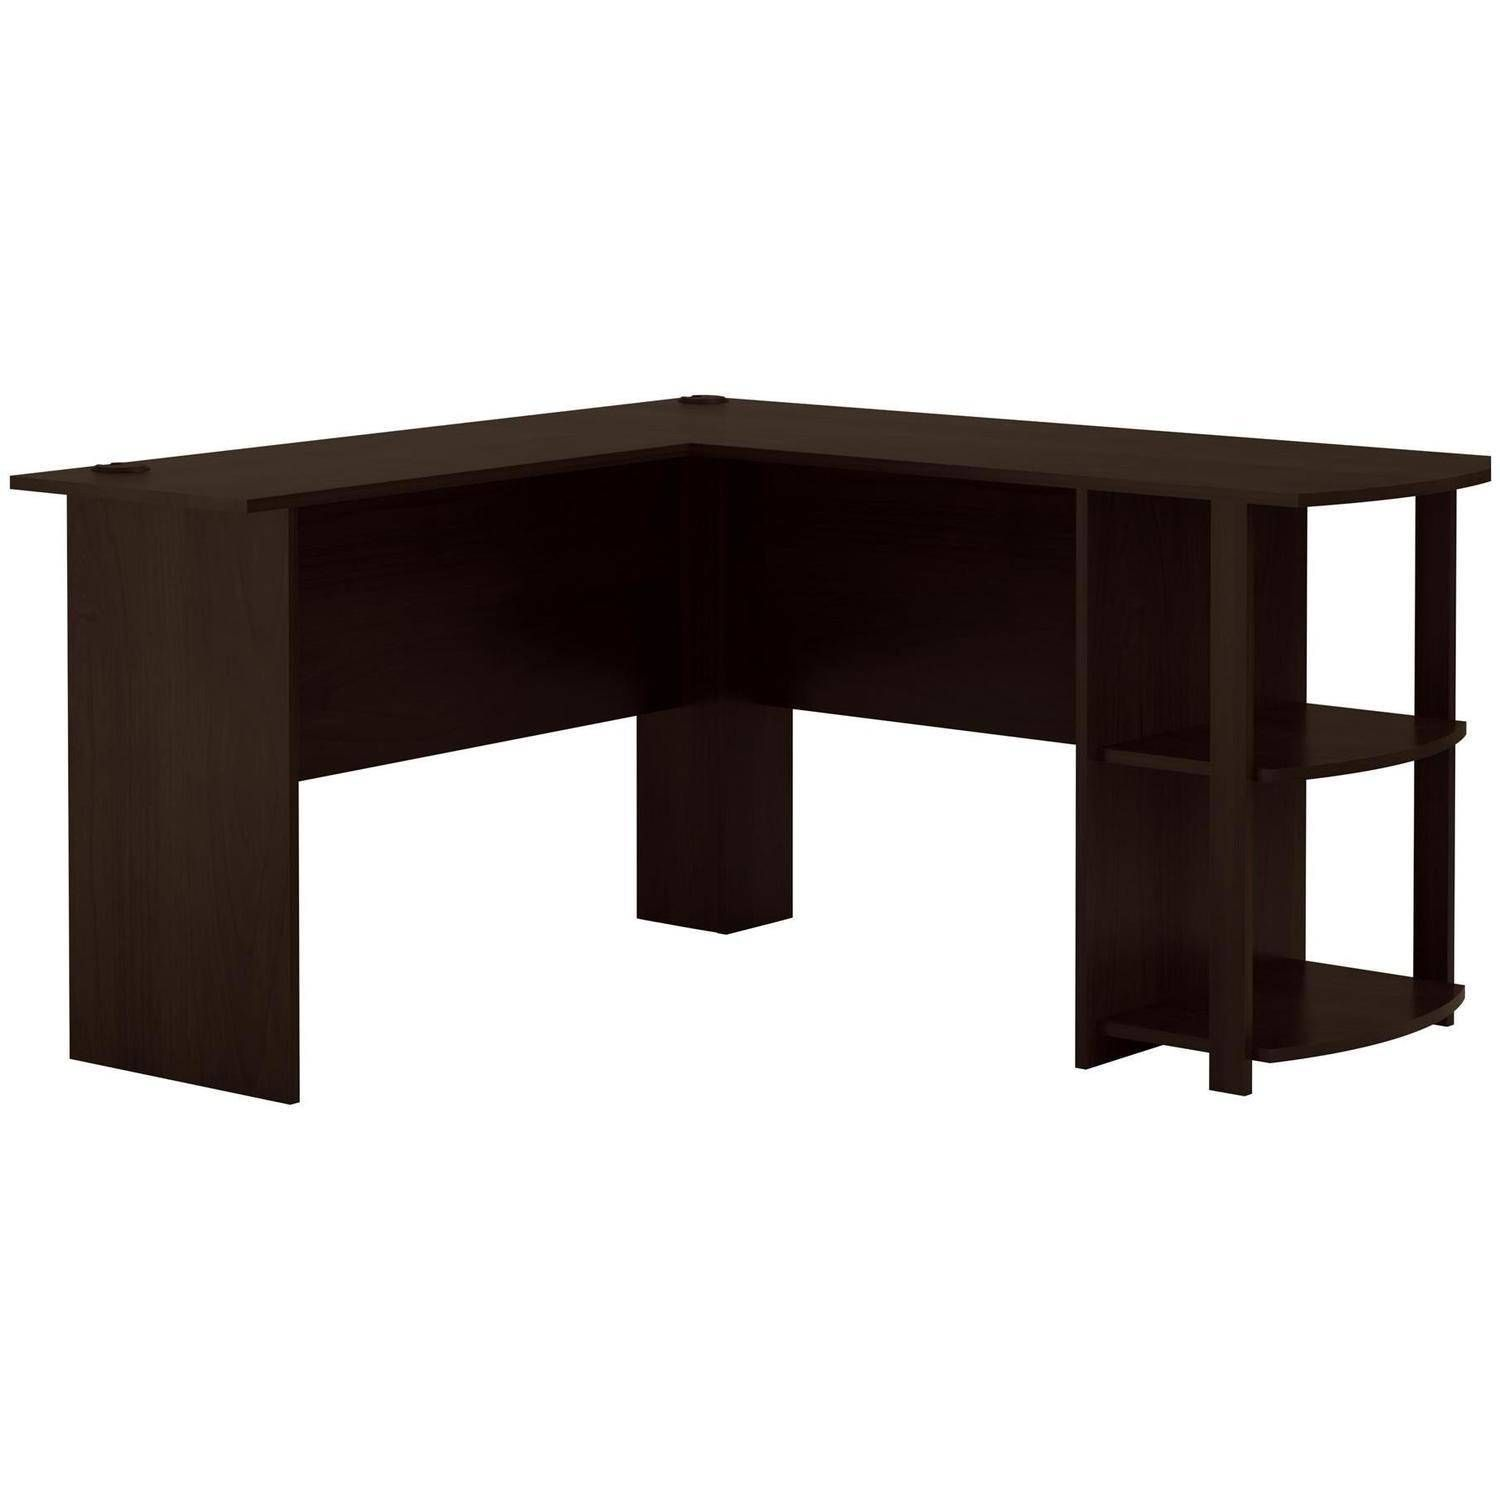 Ameriwood L Shaped Office Desk With Side Storage Russet Cherry Finish Walmart Com In 2020 L Shaped Office Desk Desk Office Desk